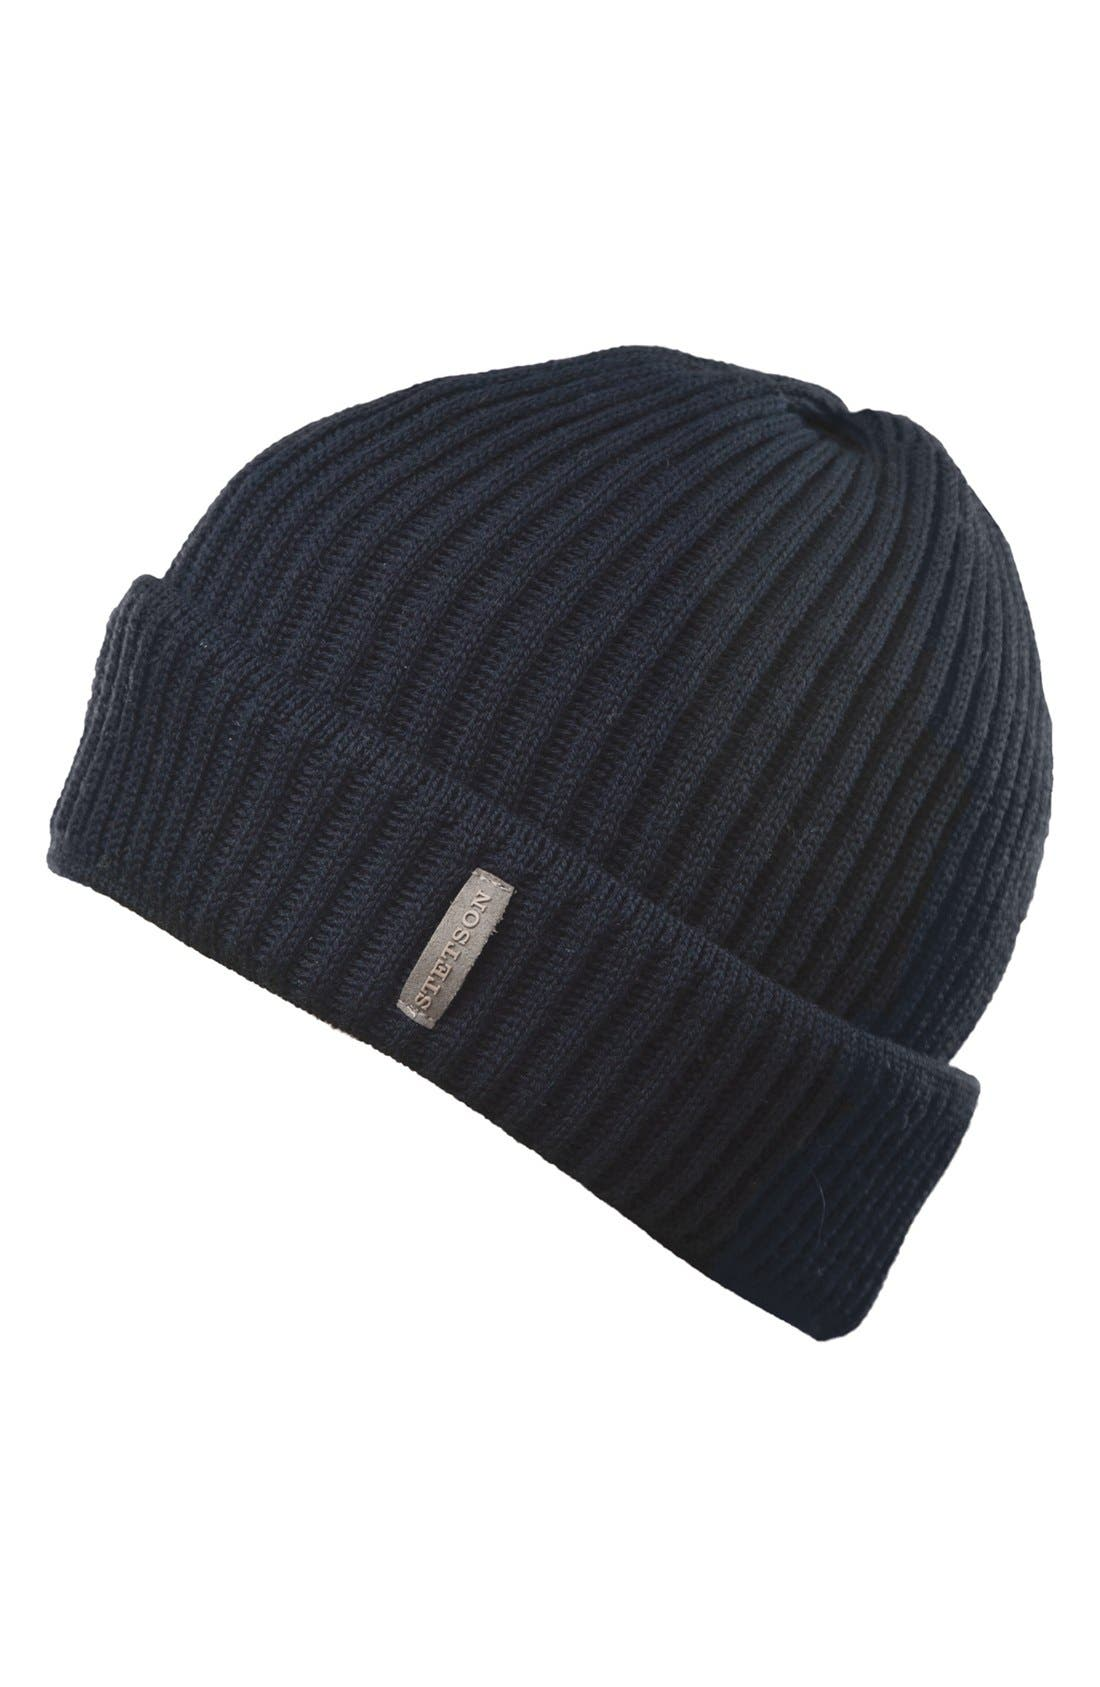 Alternate Image 1 Selected - Stetson 'Watch' Wool Beanie